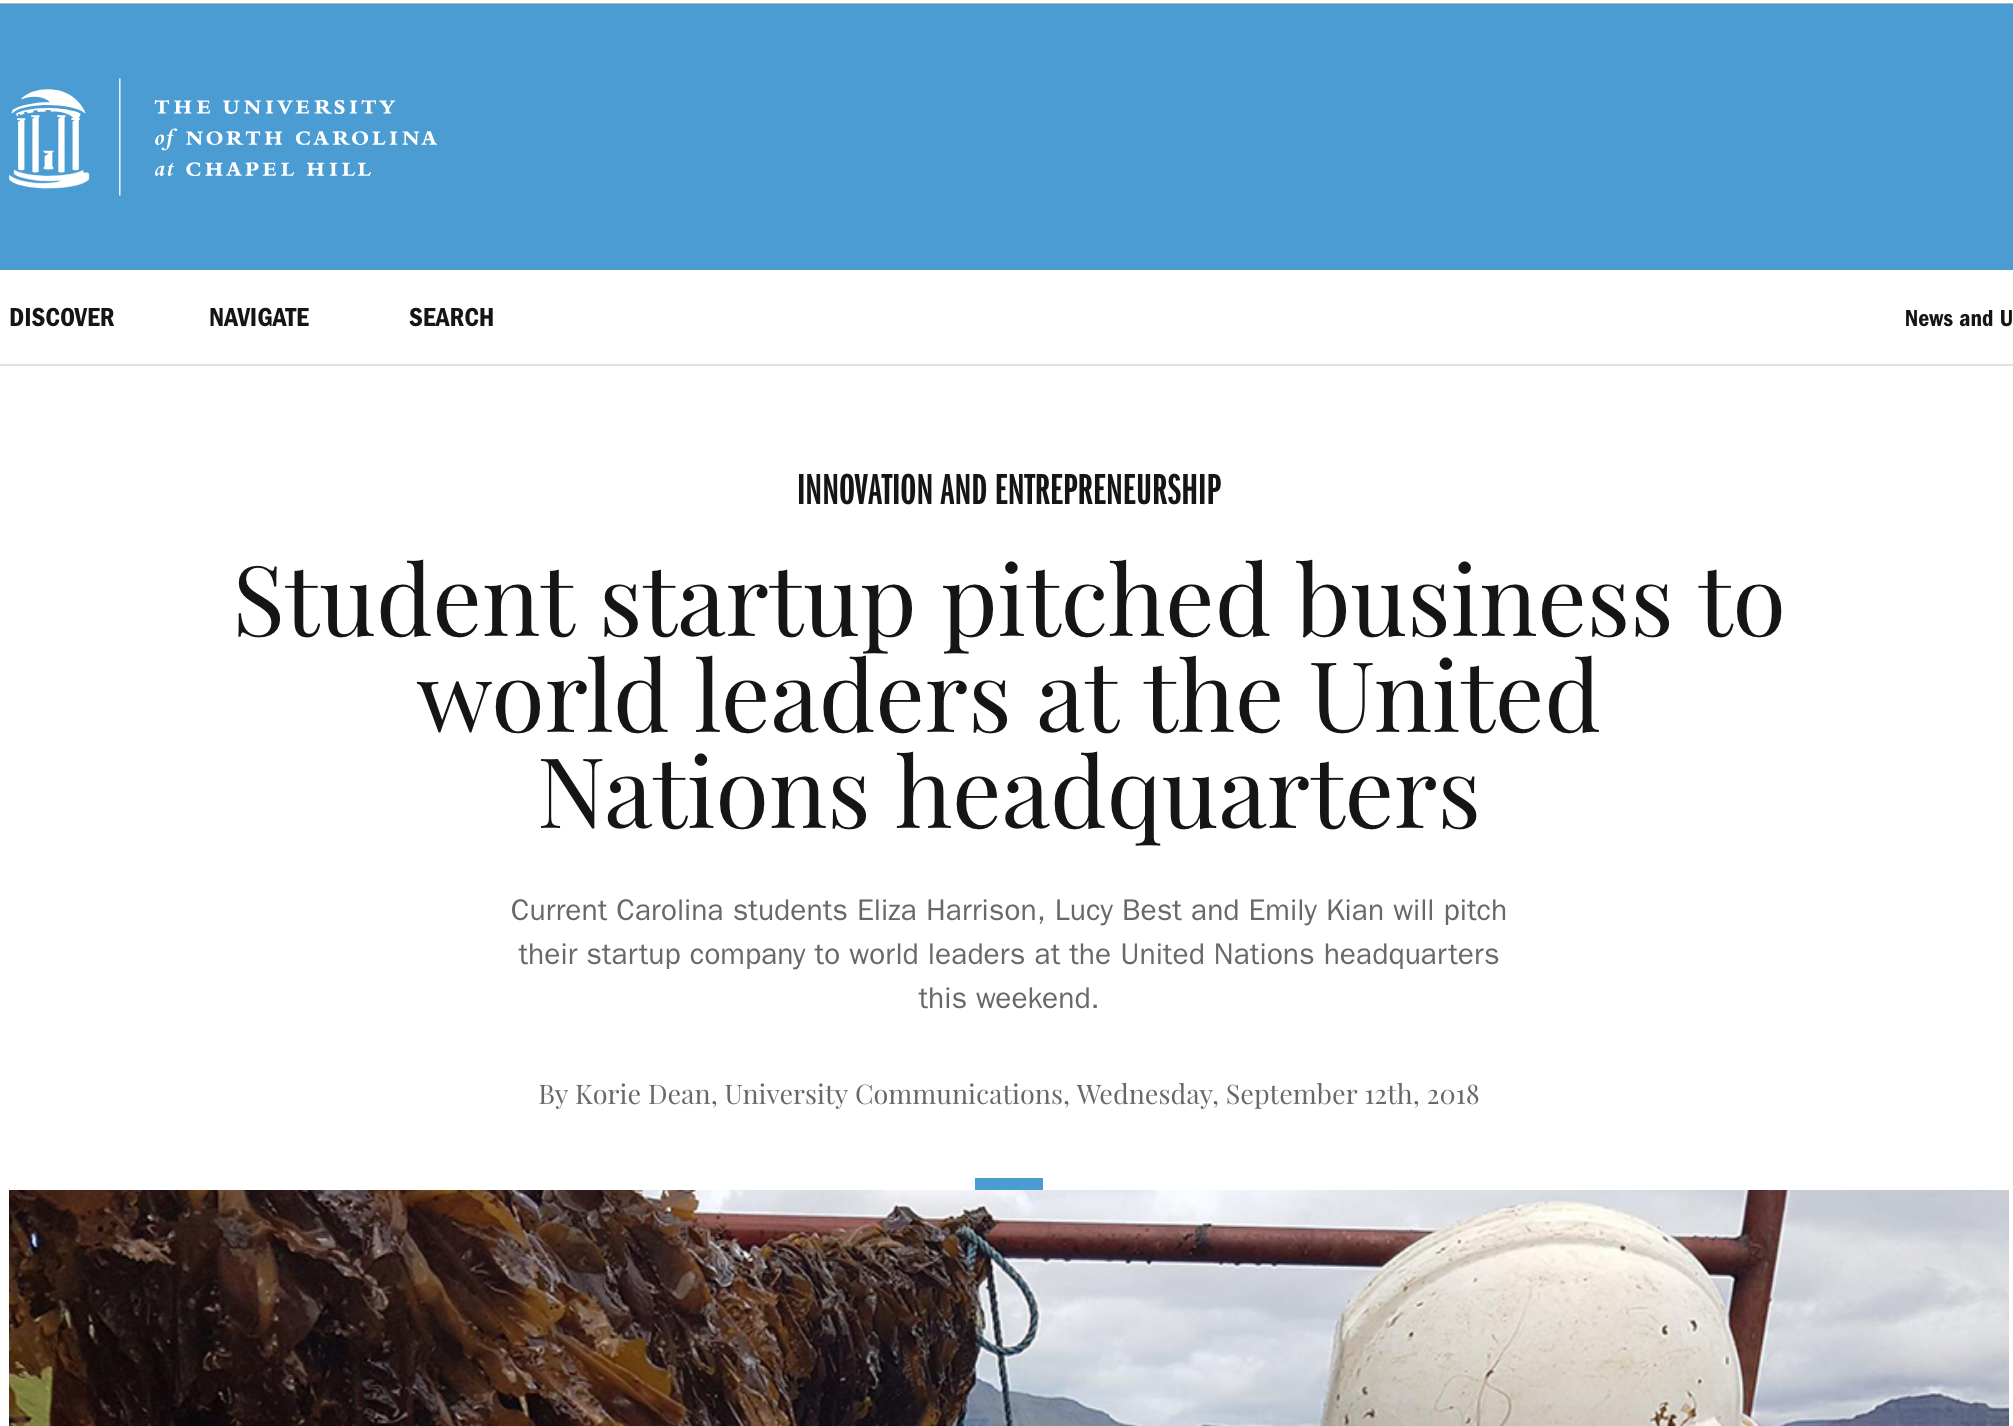 ENTHUSIASTIC SEND-OFF FROM UNC   Check out this fantastic  article  written by unc.edu immediately before the Phyta Team headed off to New York for the 2018 Hult Prize Global Finals.